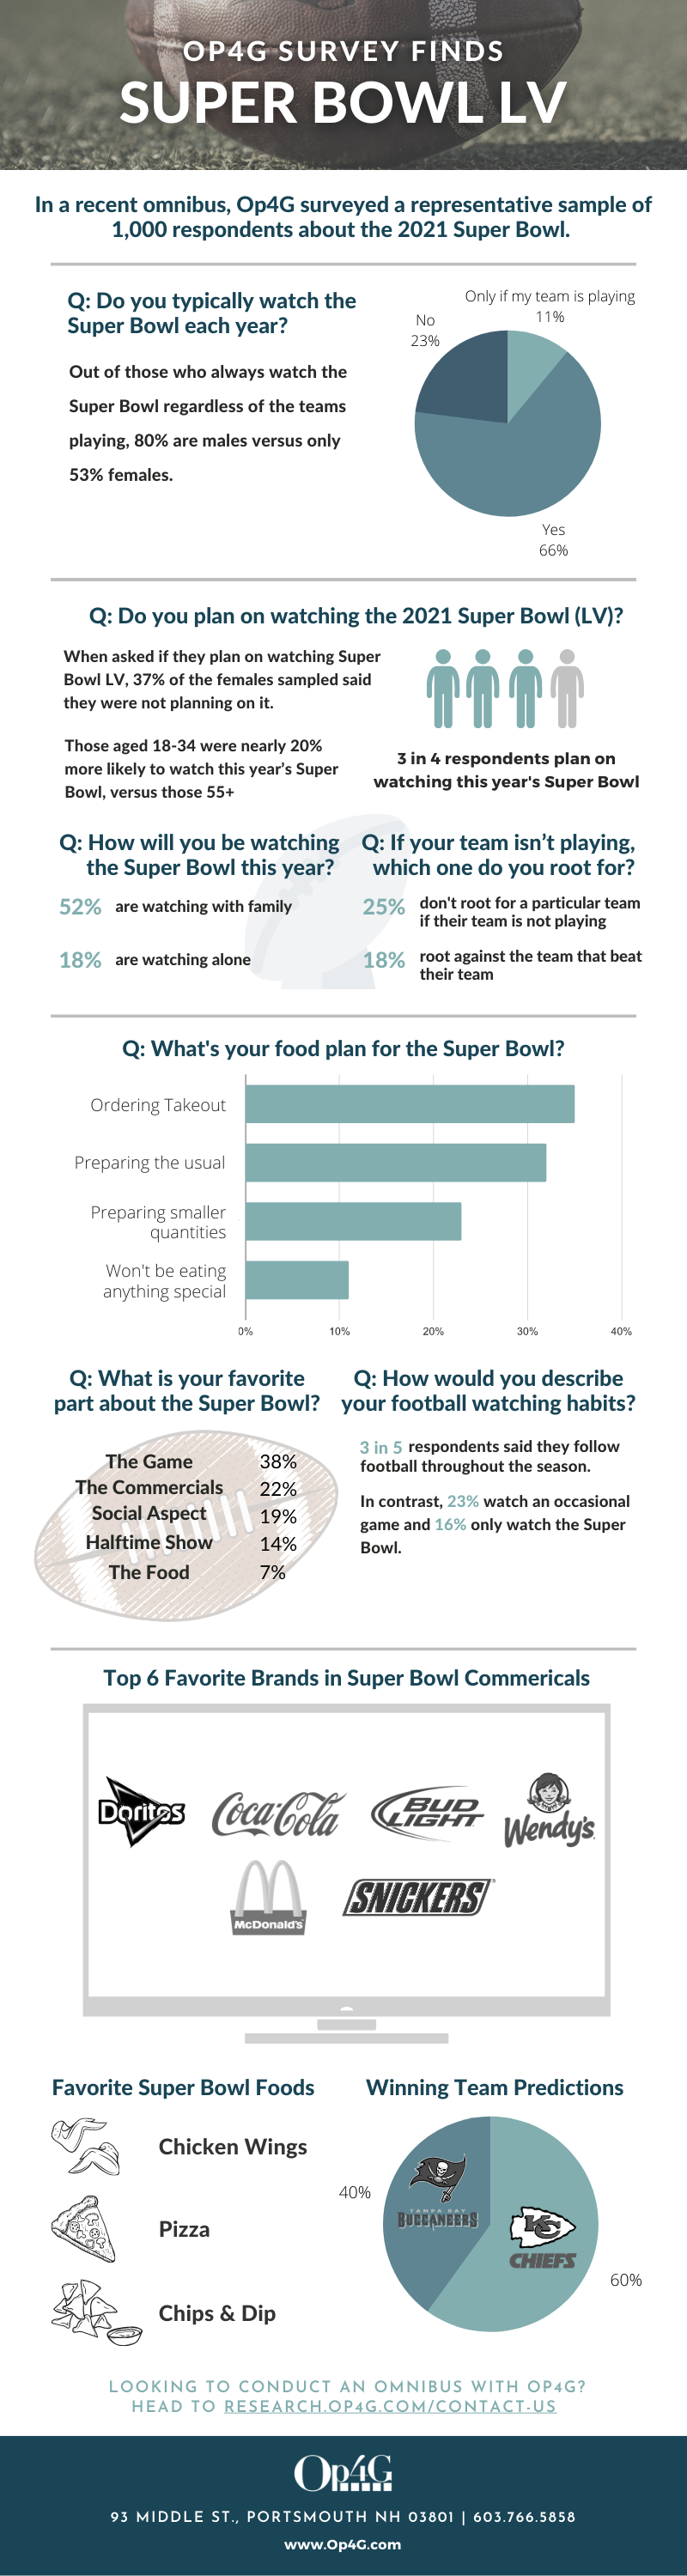 Op4G Super Bowl LV Study (Infographic)